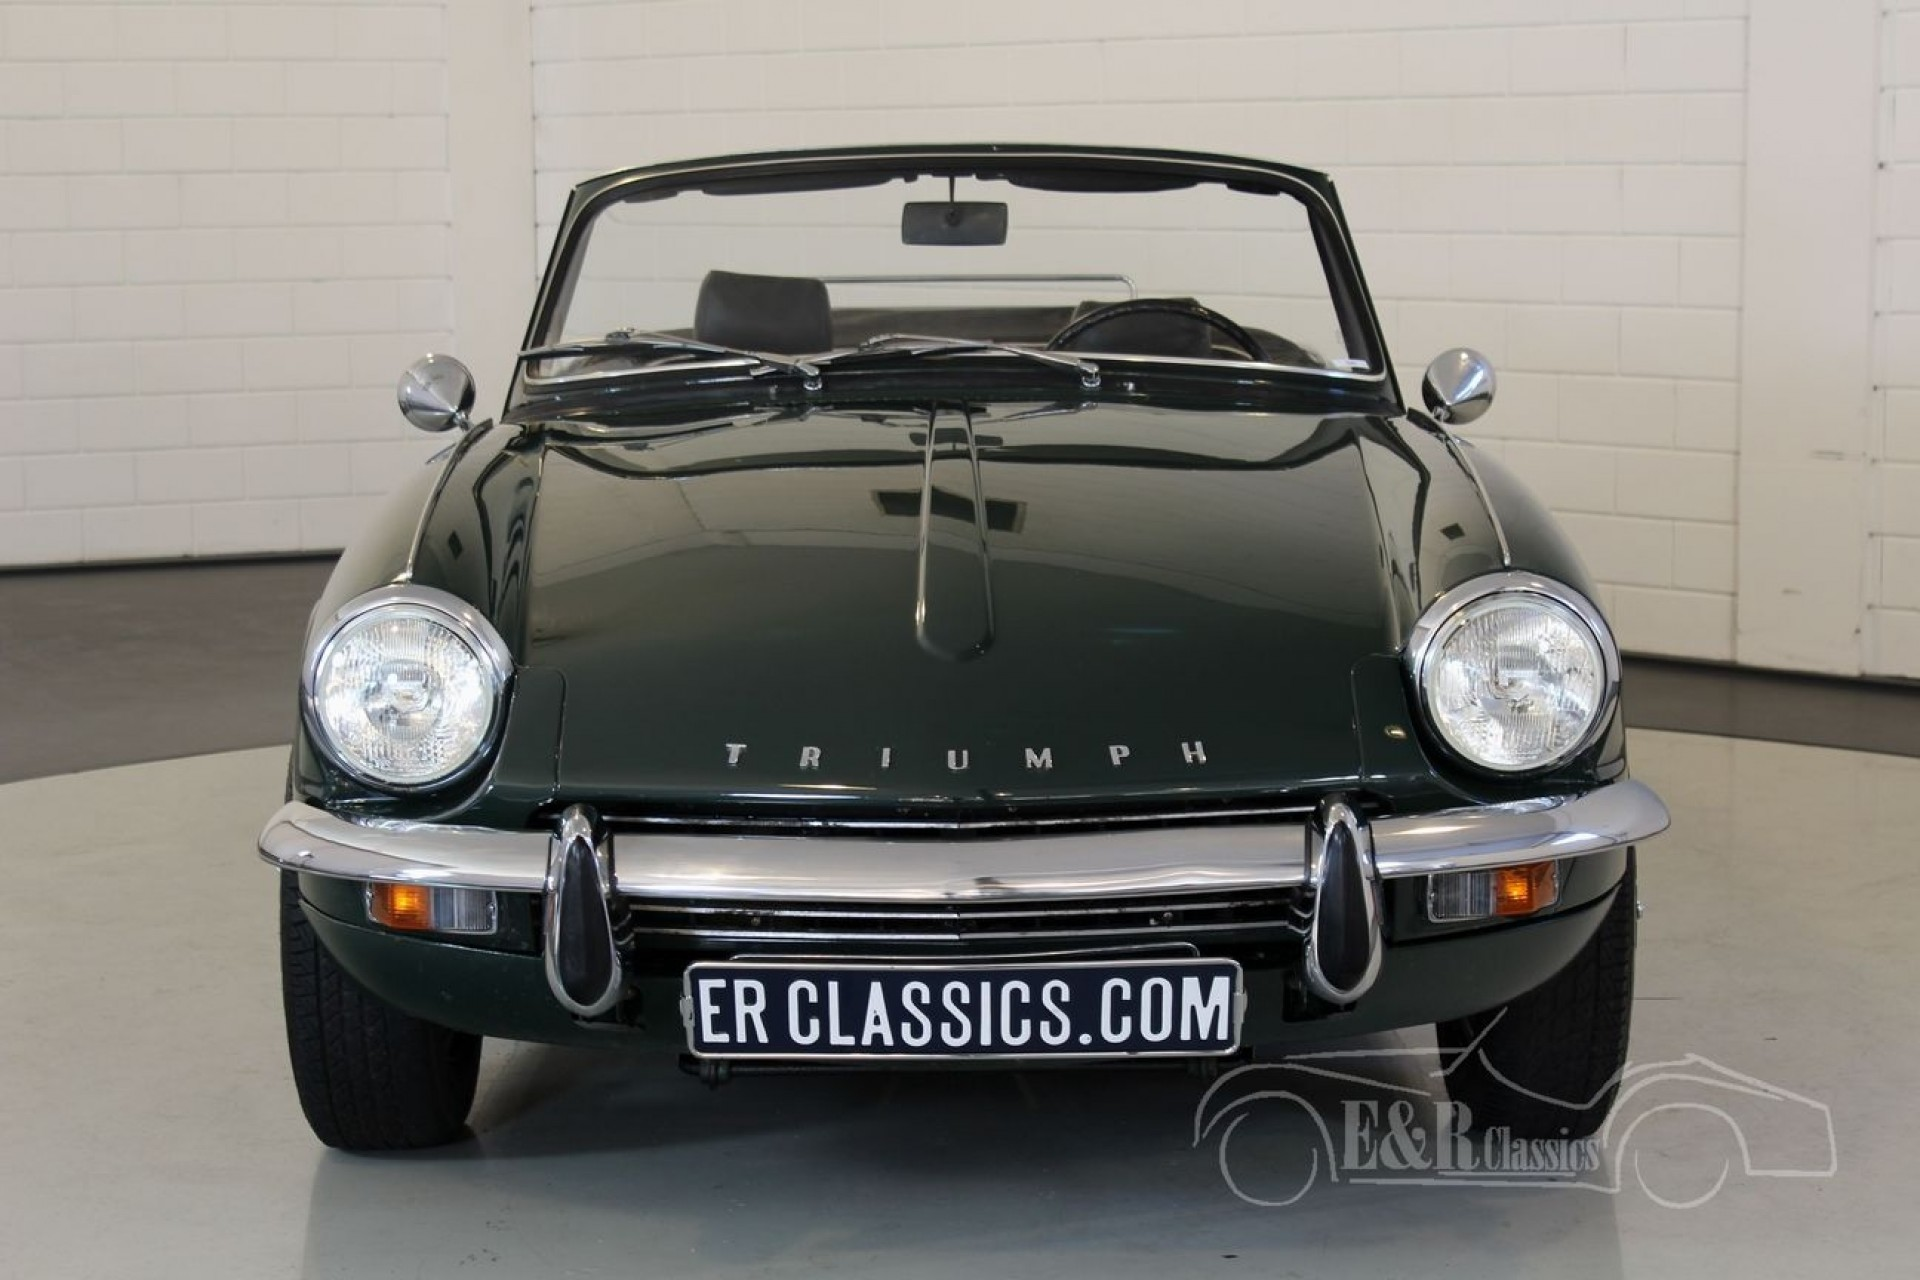 Triumph Spitfire Mk3 1969 For Sale At Erclassics HD Wallpapers Download free images and photos [musssic.tk]